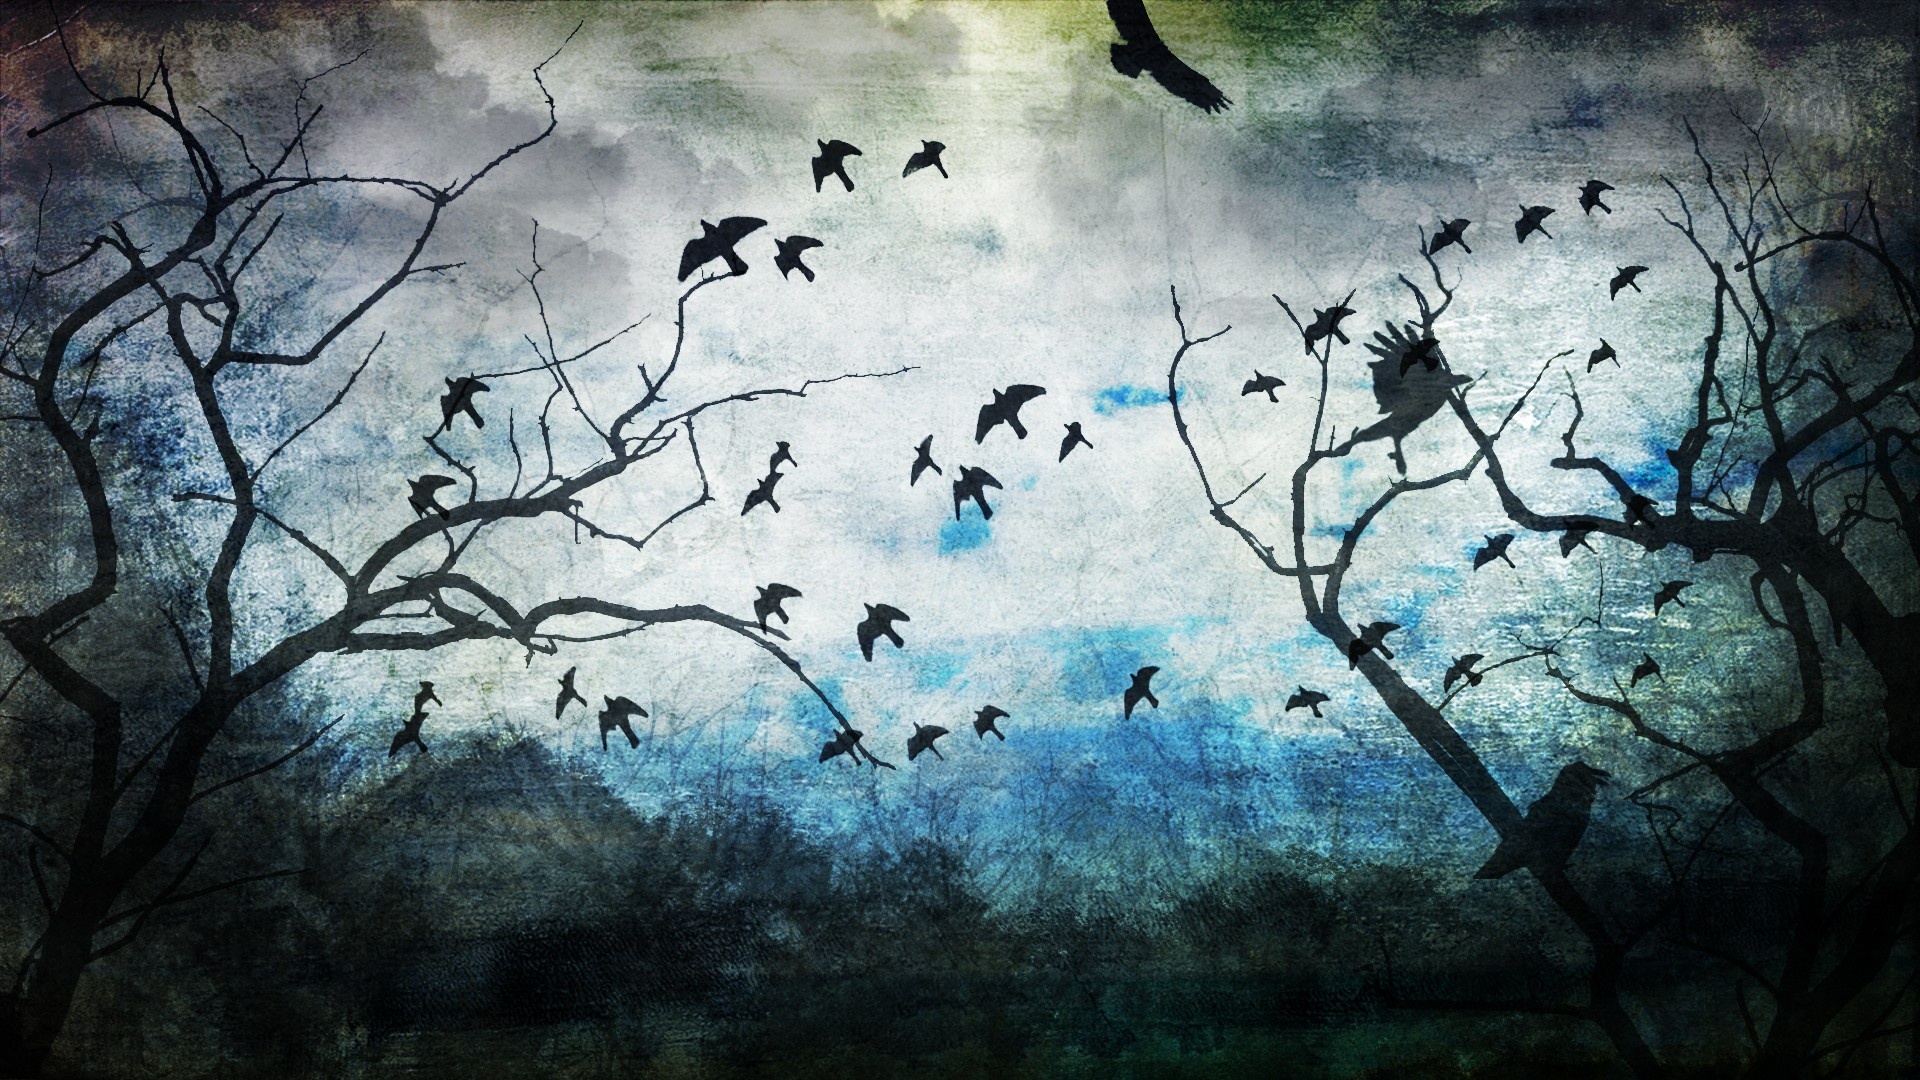 Drawn wallpaper nature Drawing Forest Art Wallpaper Wallpapers